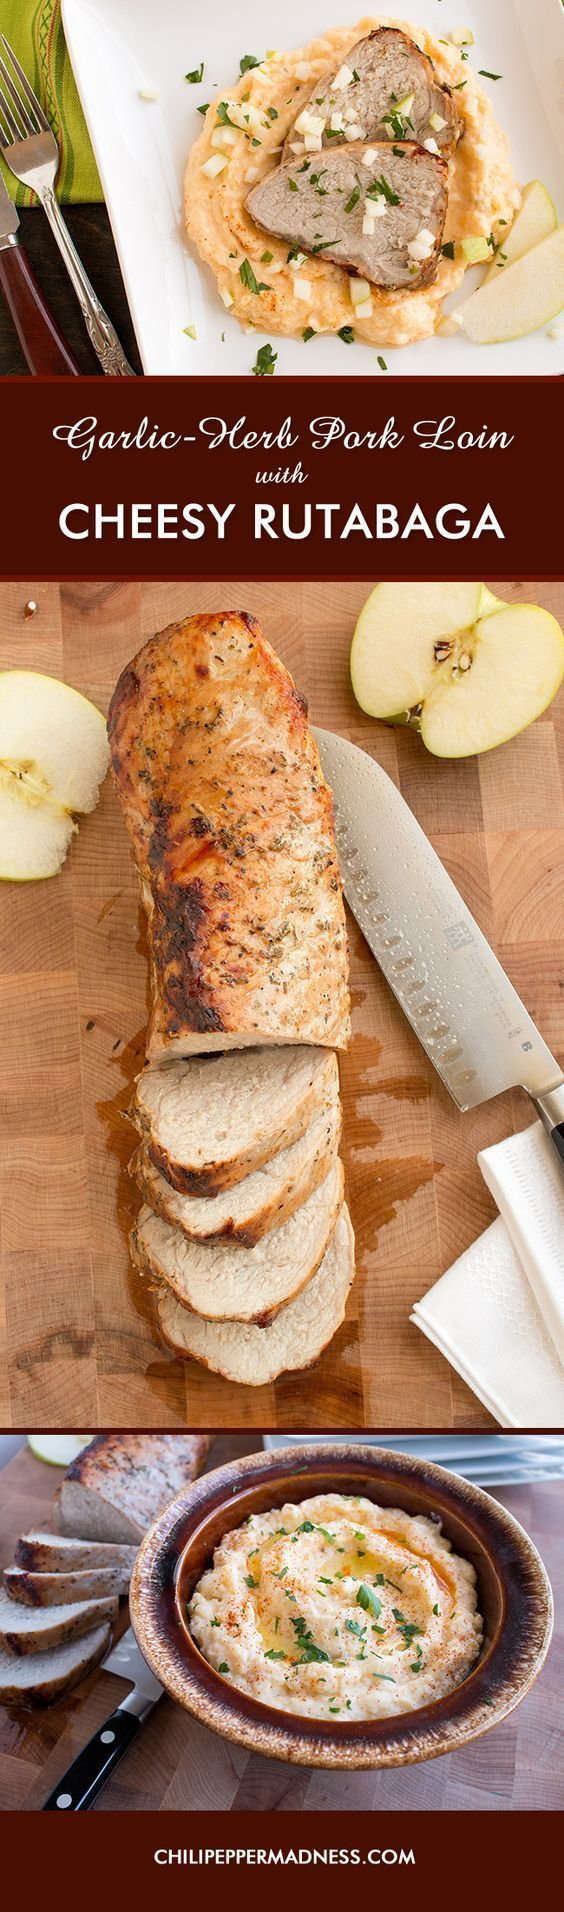 Baked Garlic and Herb Pork Loin with Cheesy-Garlic Rutabaga Mash. Served with sliced apples.